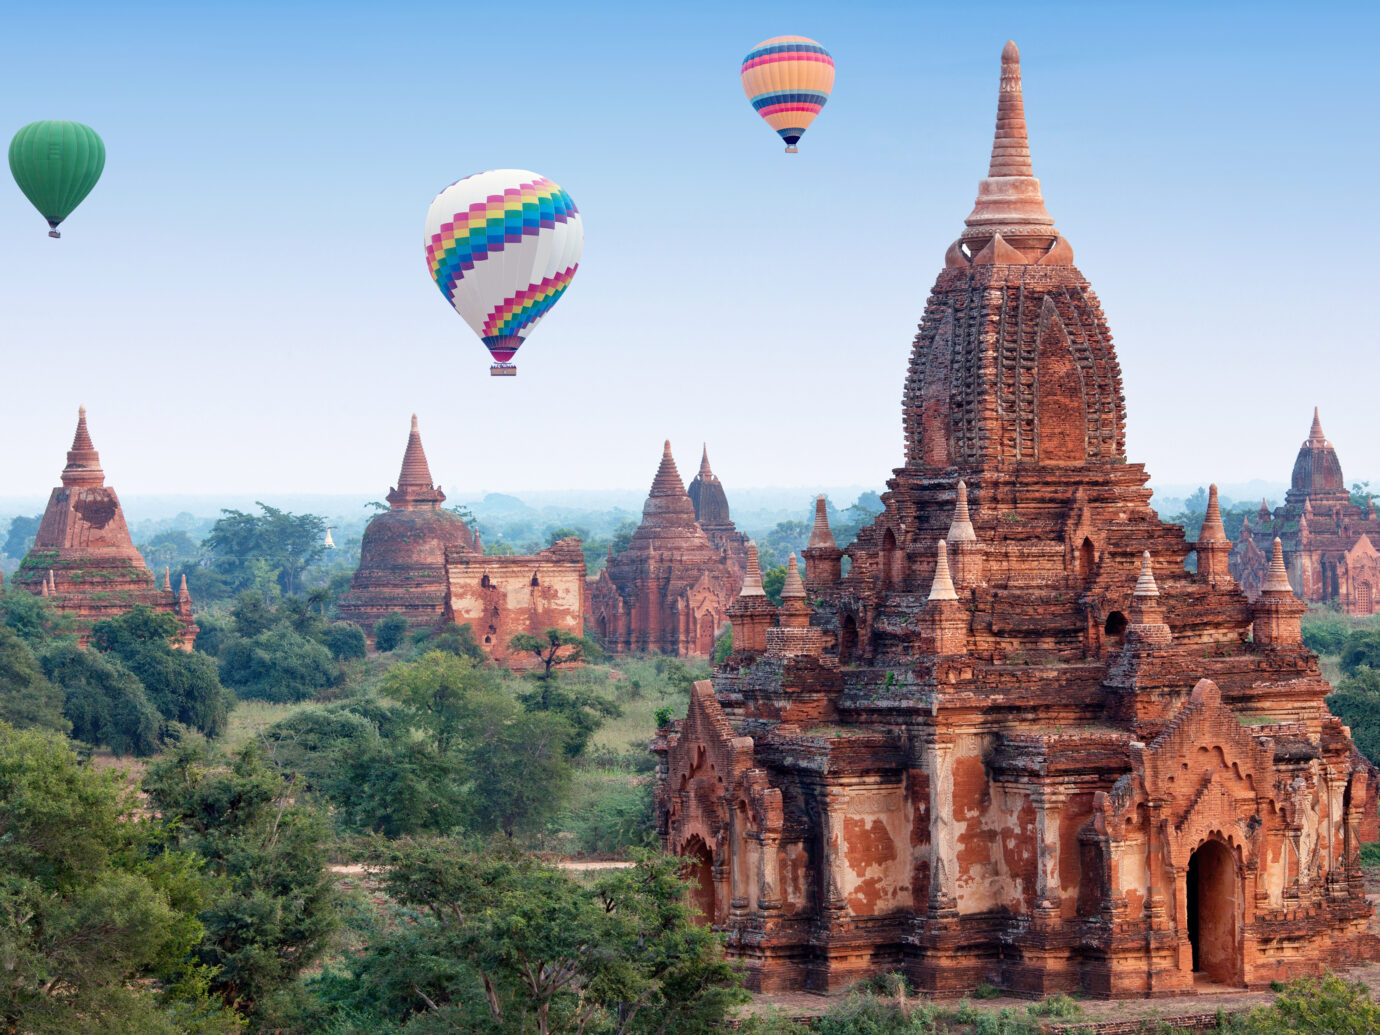 hot air balloons flying over Bagan, Mandalay division, Myanmar